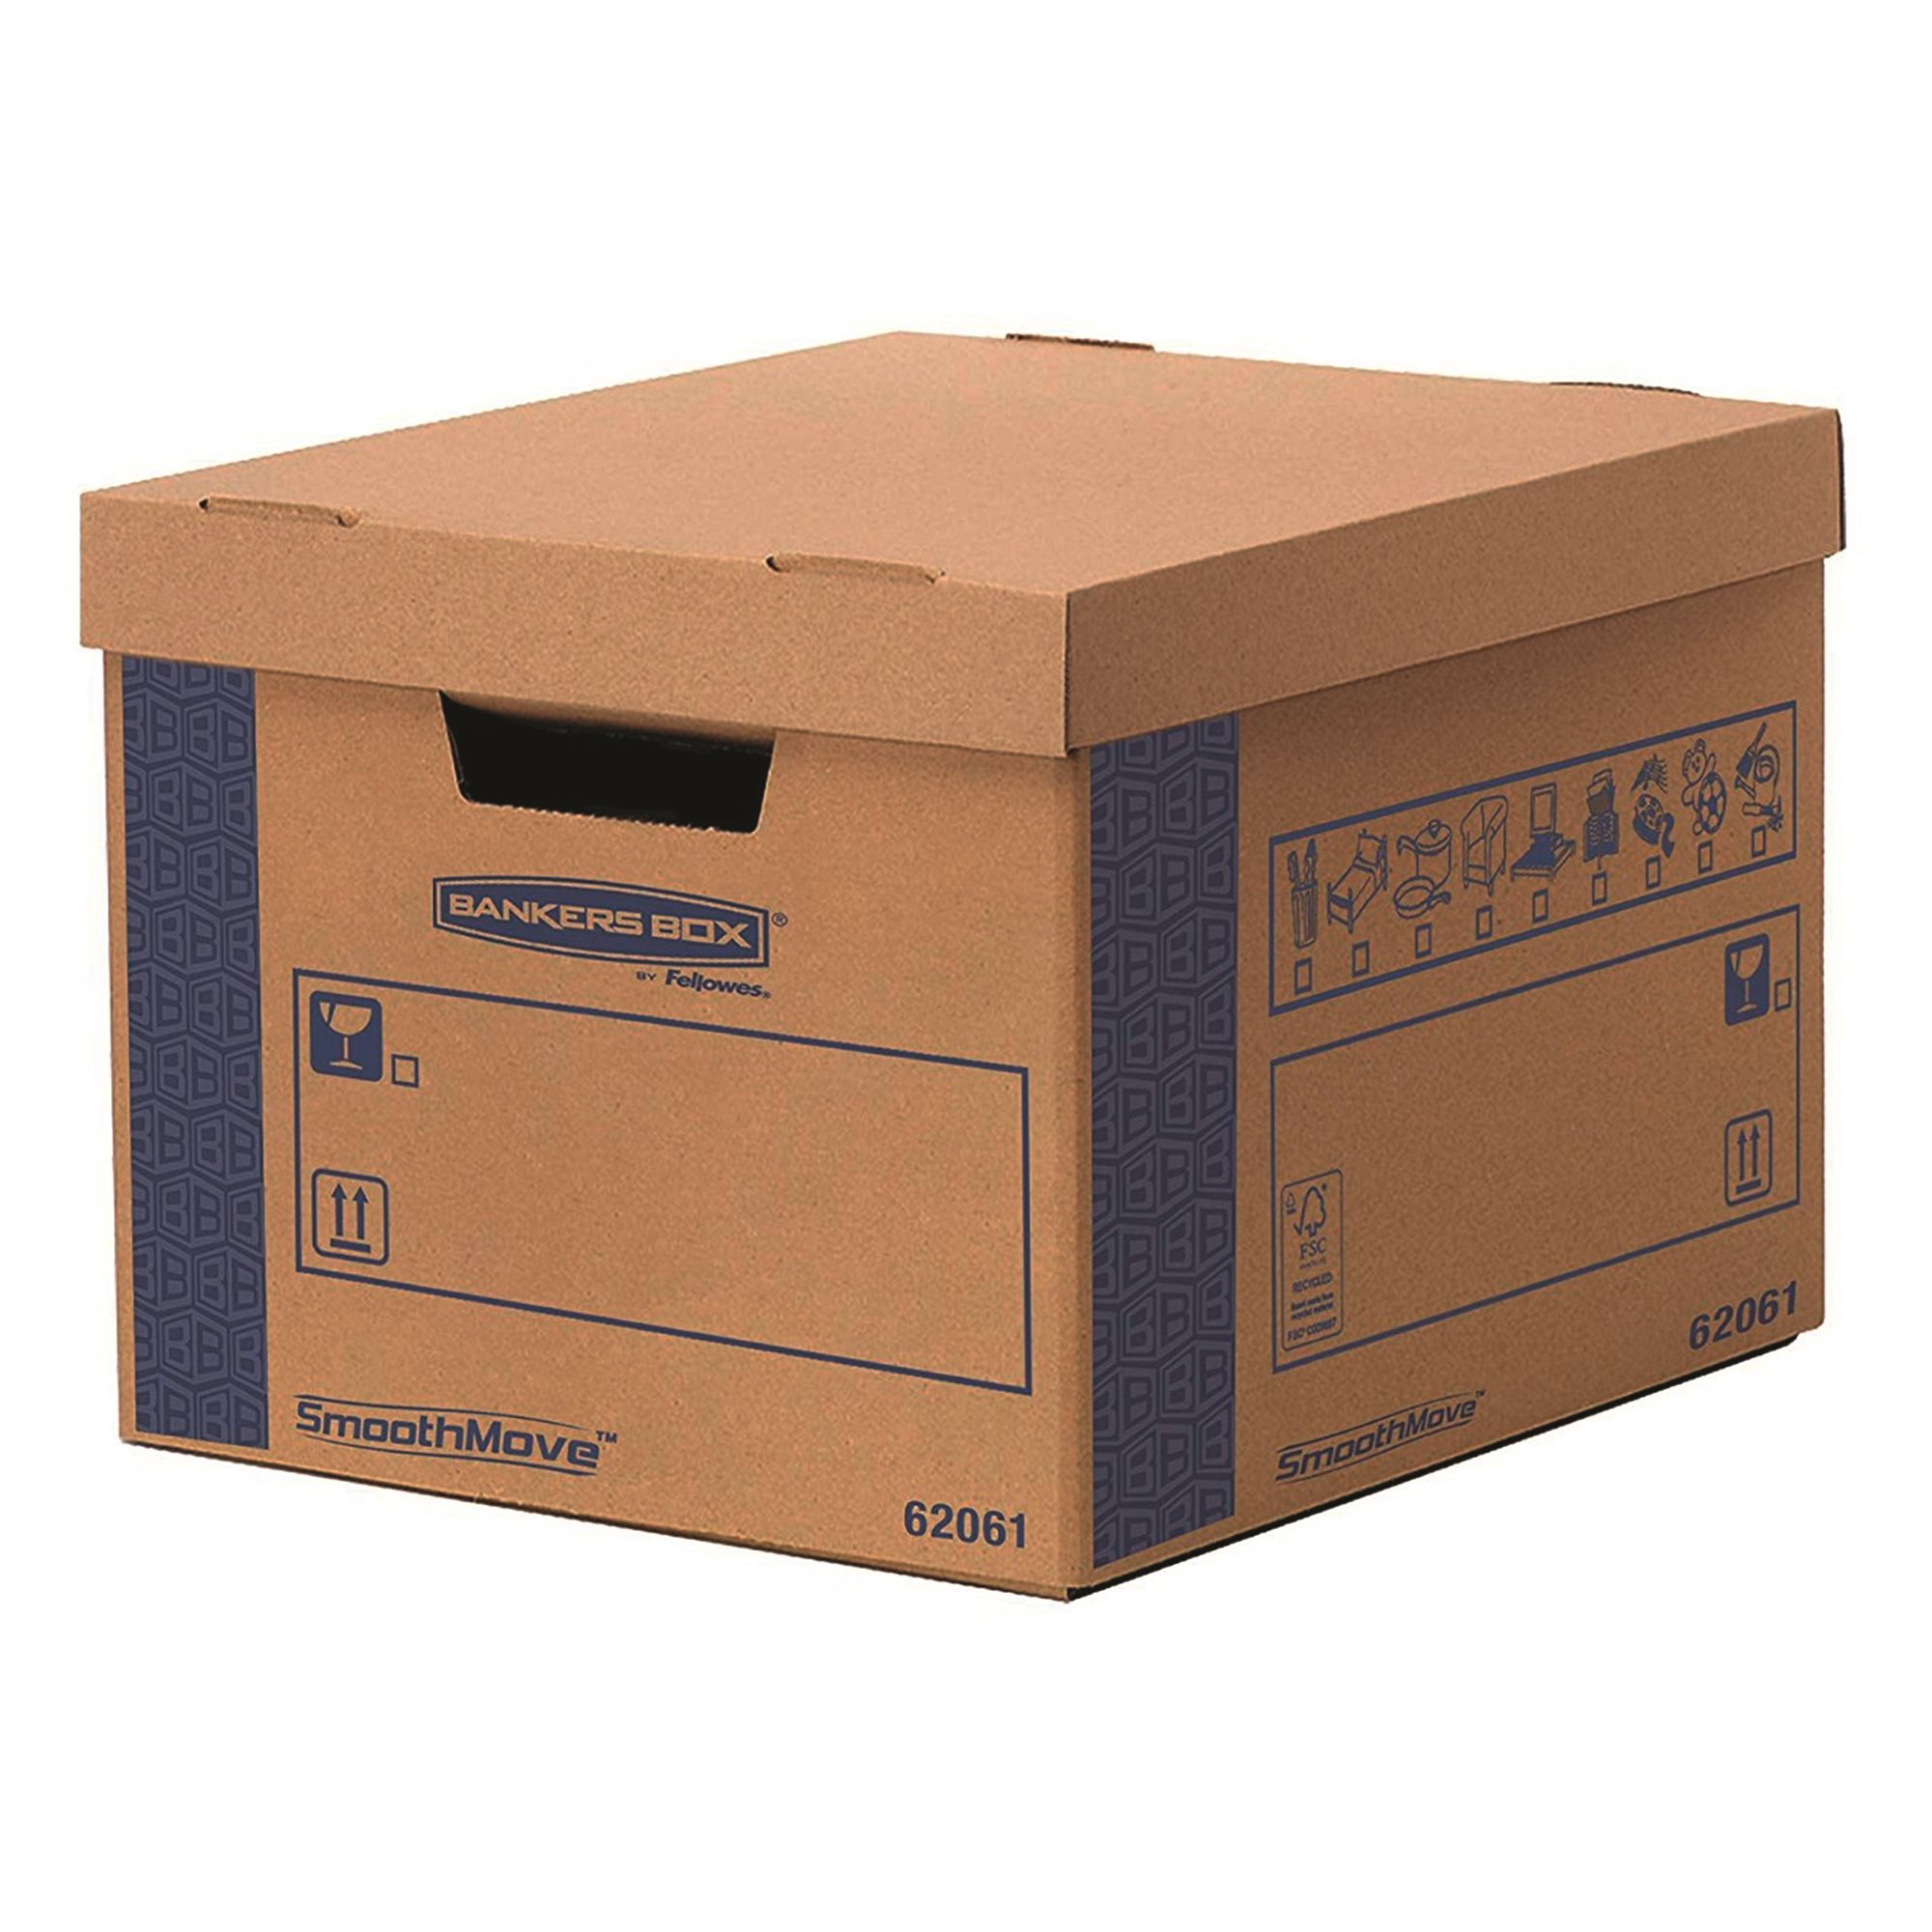 Moving box with automatic folding system SmoothMove Prime FastFold Box Fellowes